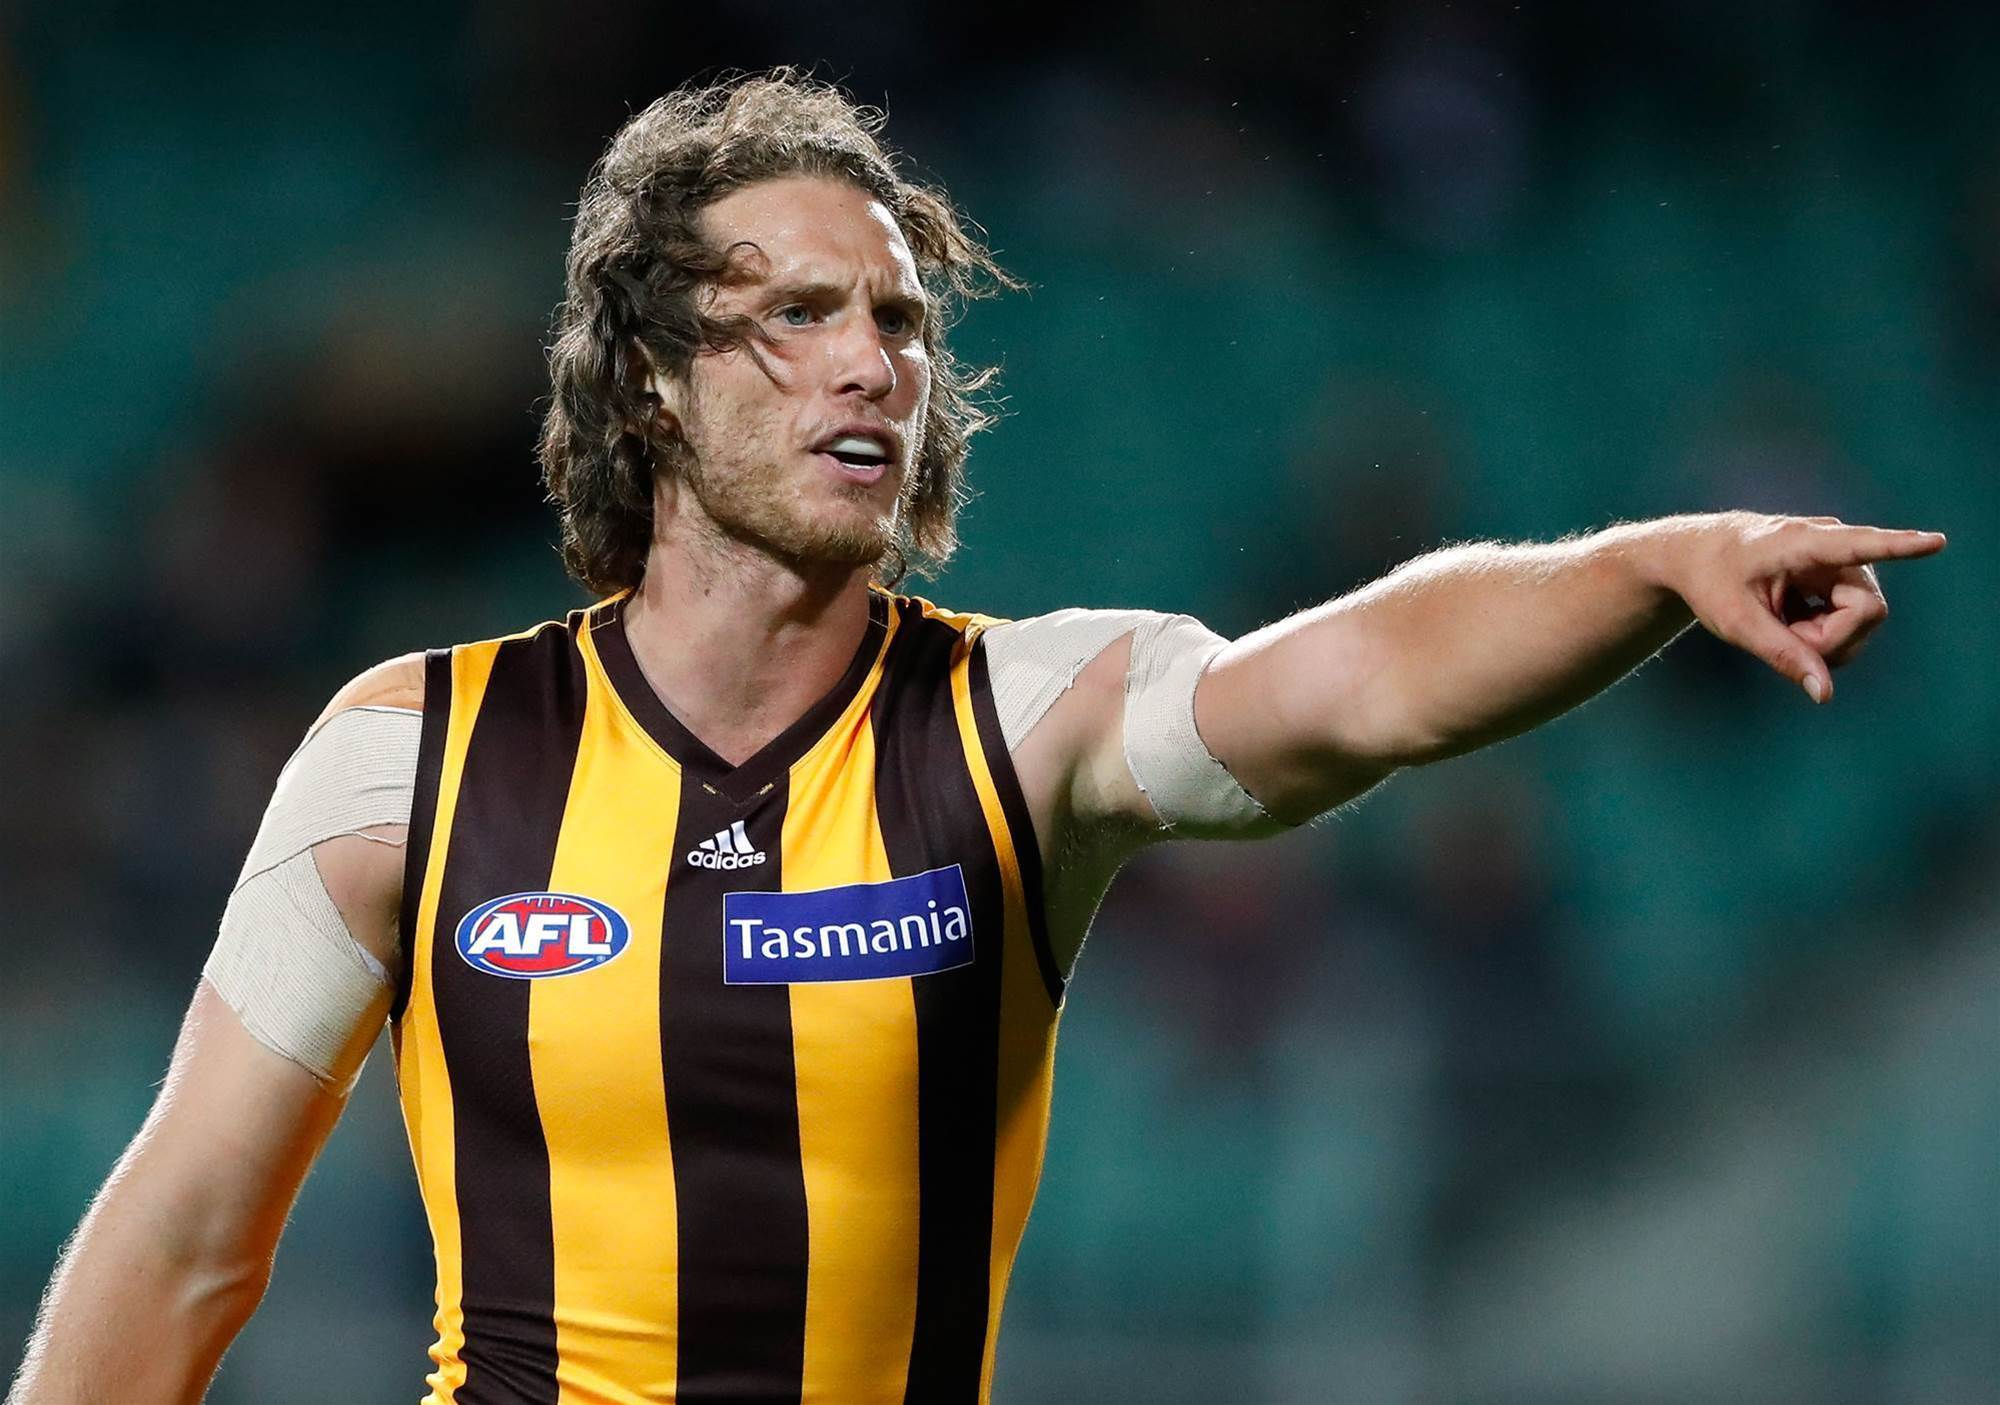 Vickery, 27, announces shock retirement from AFL